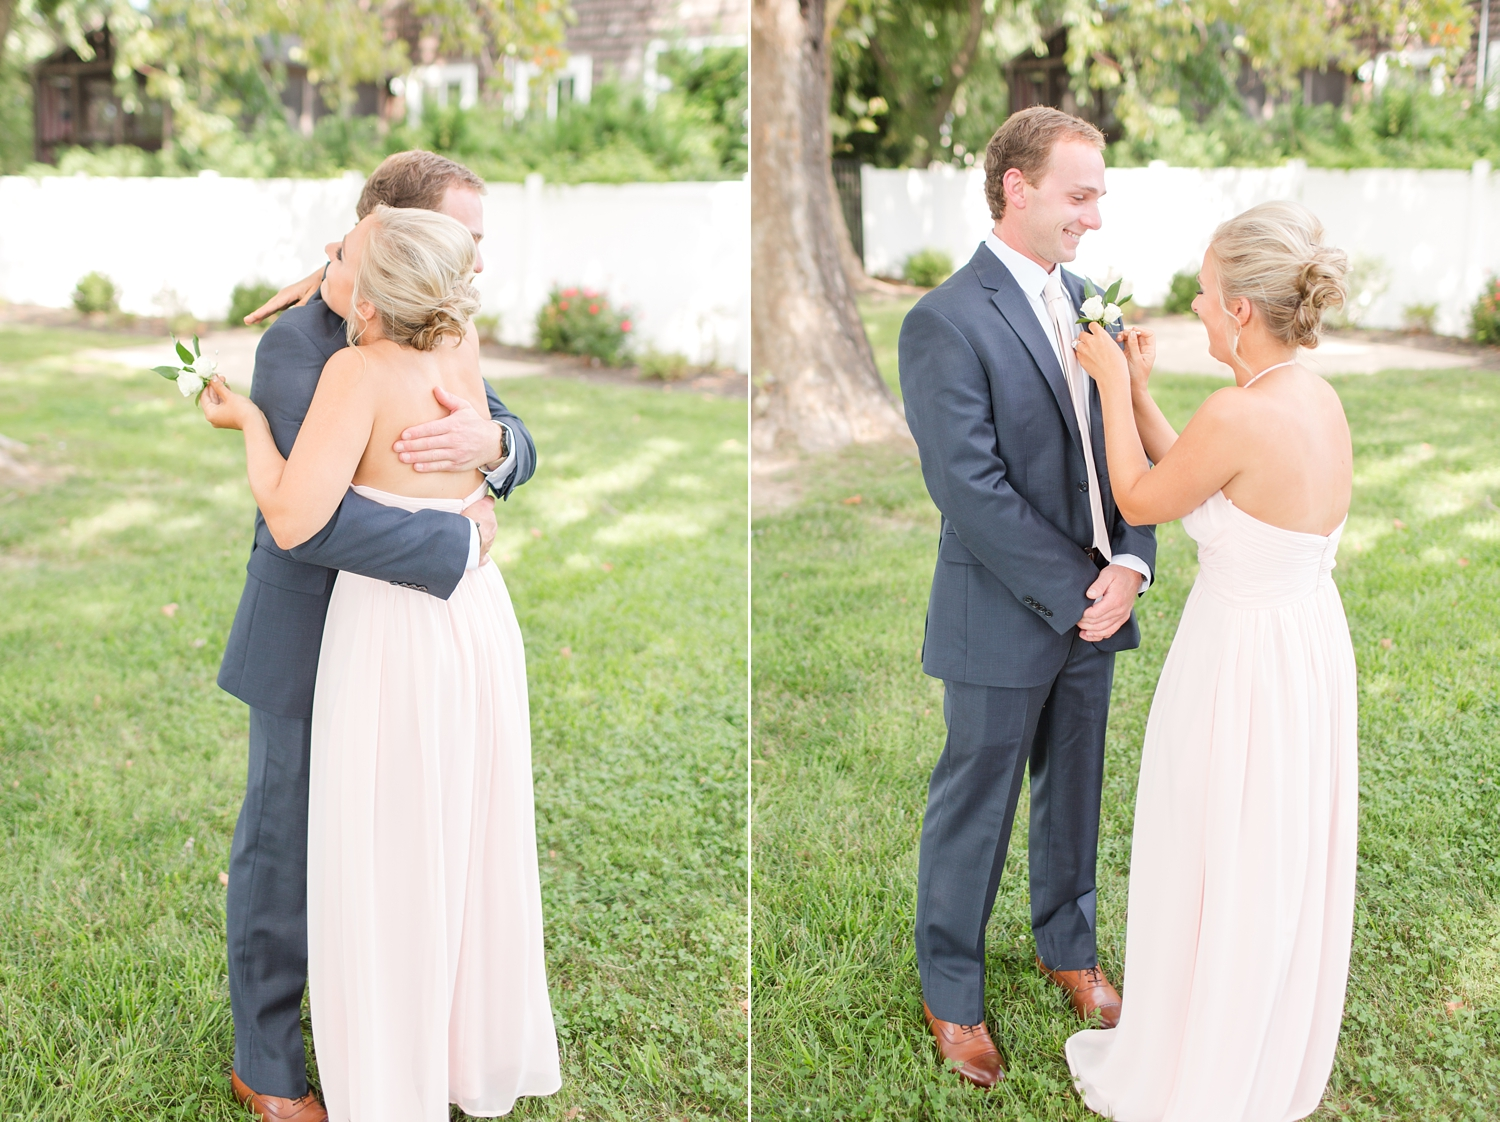 Tommy's twin sister helped him put on the boutonnière. Such a special moment!